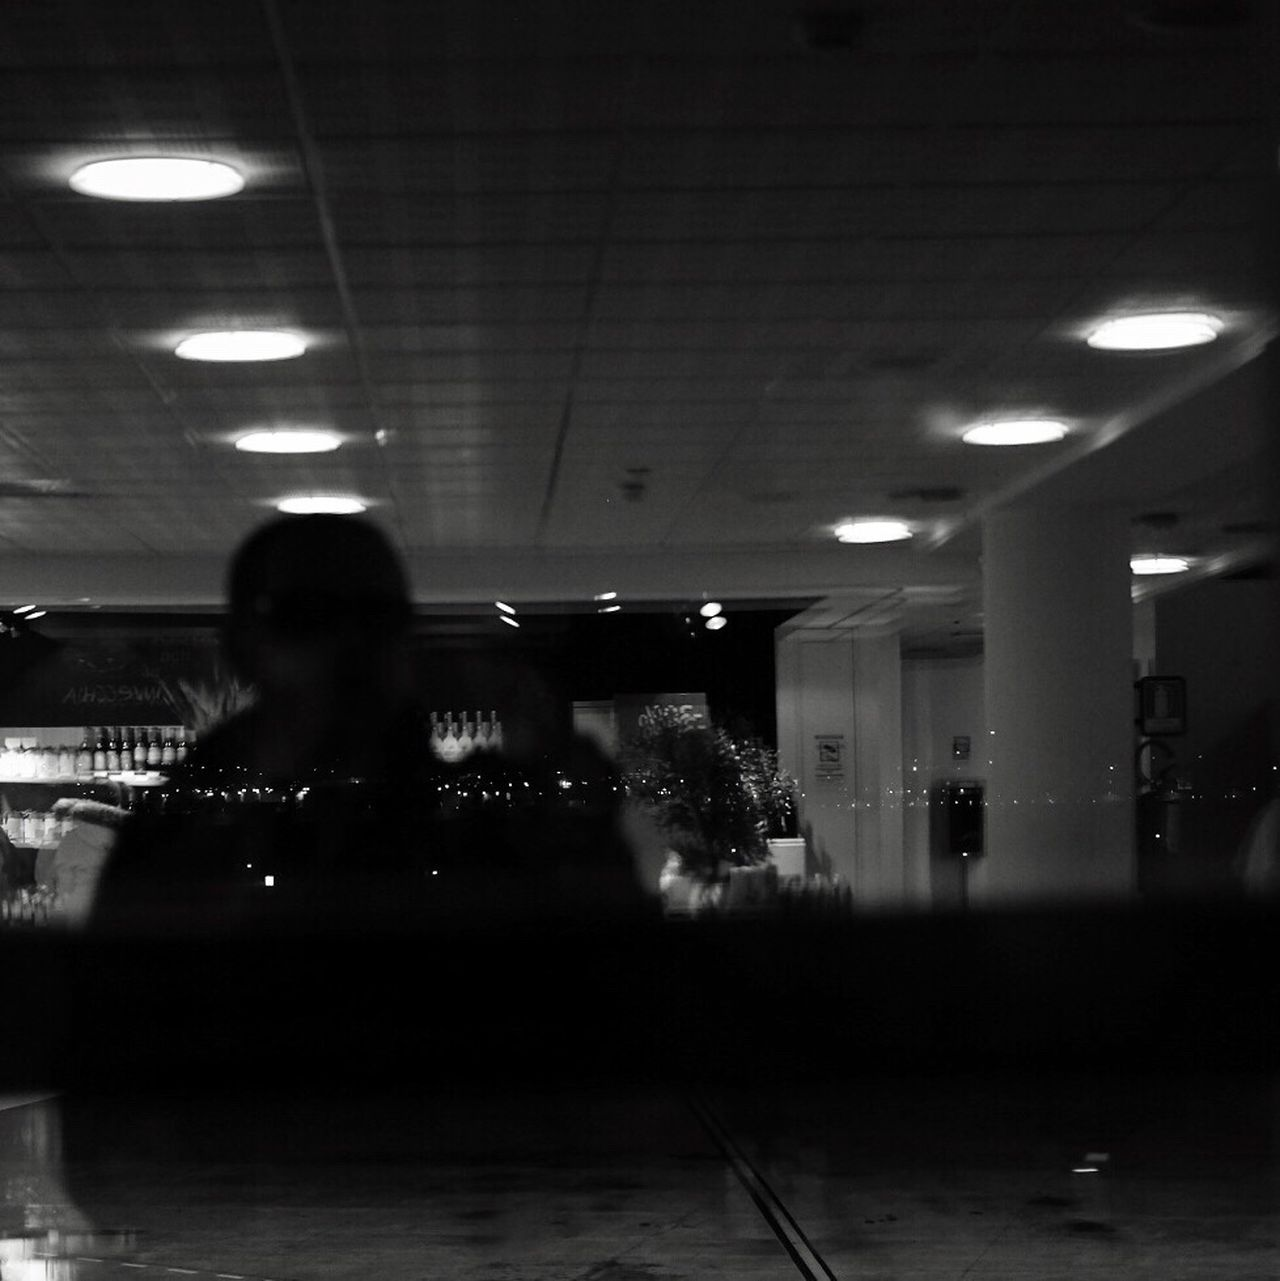 Self Portrait Indoors  One Man Only Taking Photos Shootermag Fine Art Photography TheMinimals (less Edit Juxt Photography) Walking Around Notes From Babylon Blackandwhite Photography Close-up Illuminated Lifestyles One Person Street Life Urban Exploration Airport